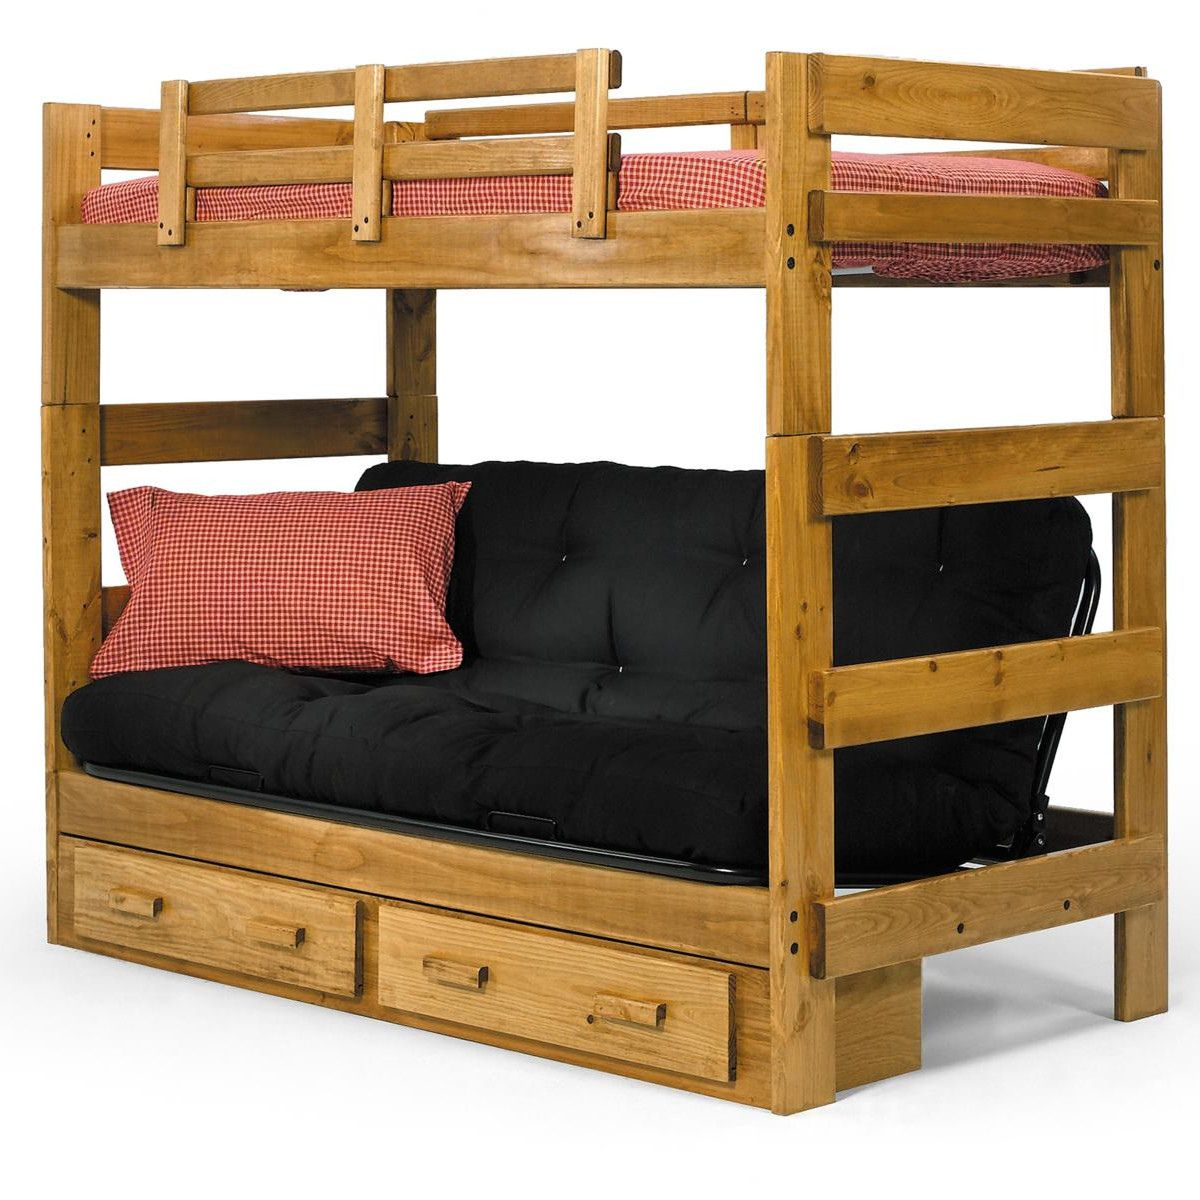 Futon Bunk Bed With Storage Lowes Paint Colors Interior Check More At Http